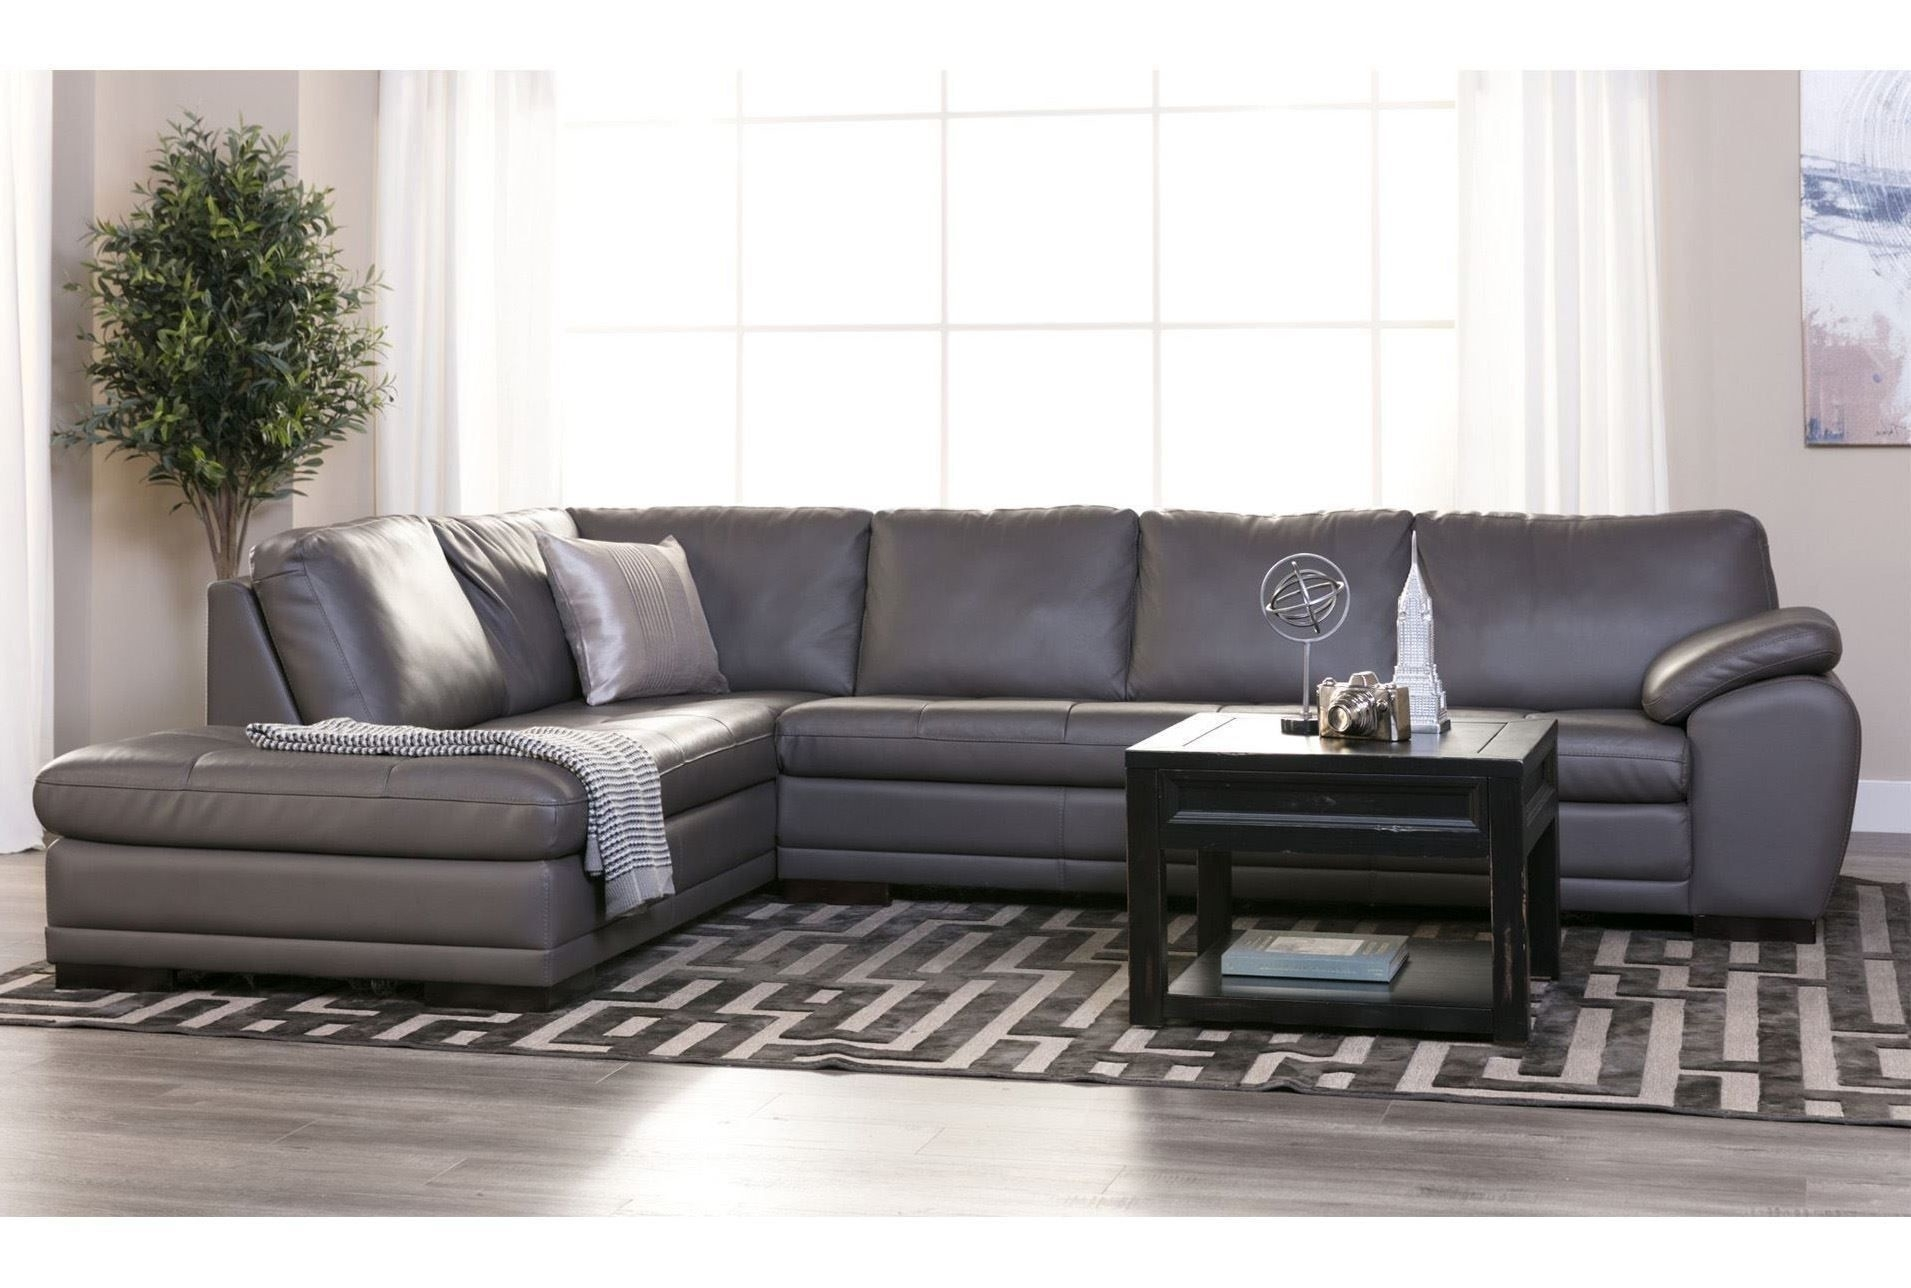 Living Spaces Leather Sectional Tatum Dark Grey 2 Piece W Raf Chaise Regarding Tatum Dark Grey 2 Piece Sectionals With Laf Chaise (Image 13 of 25)